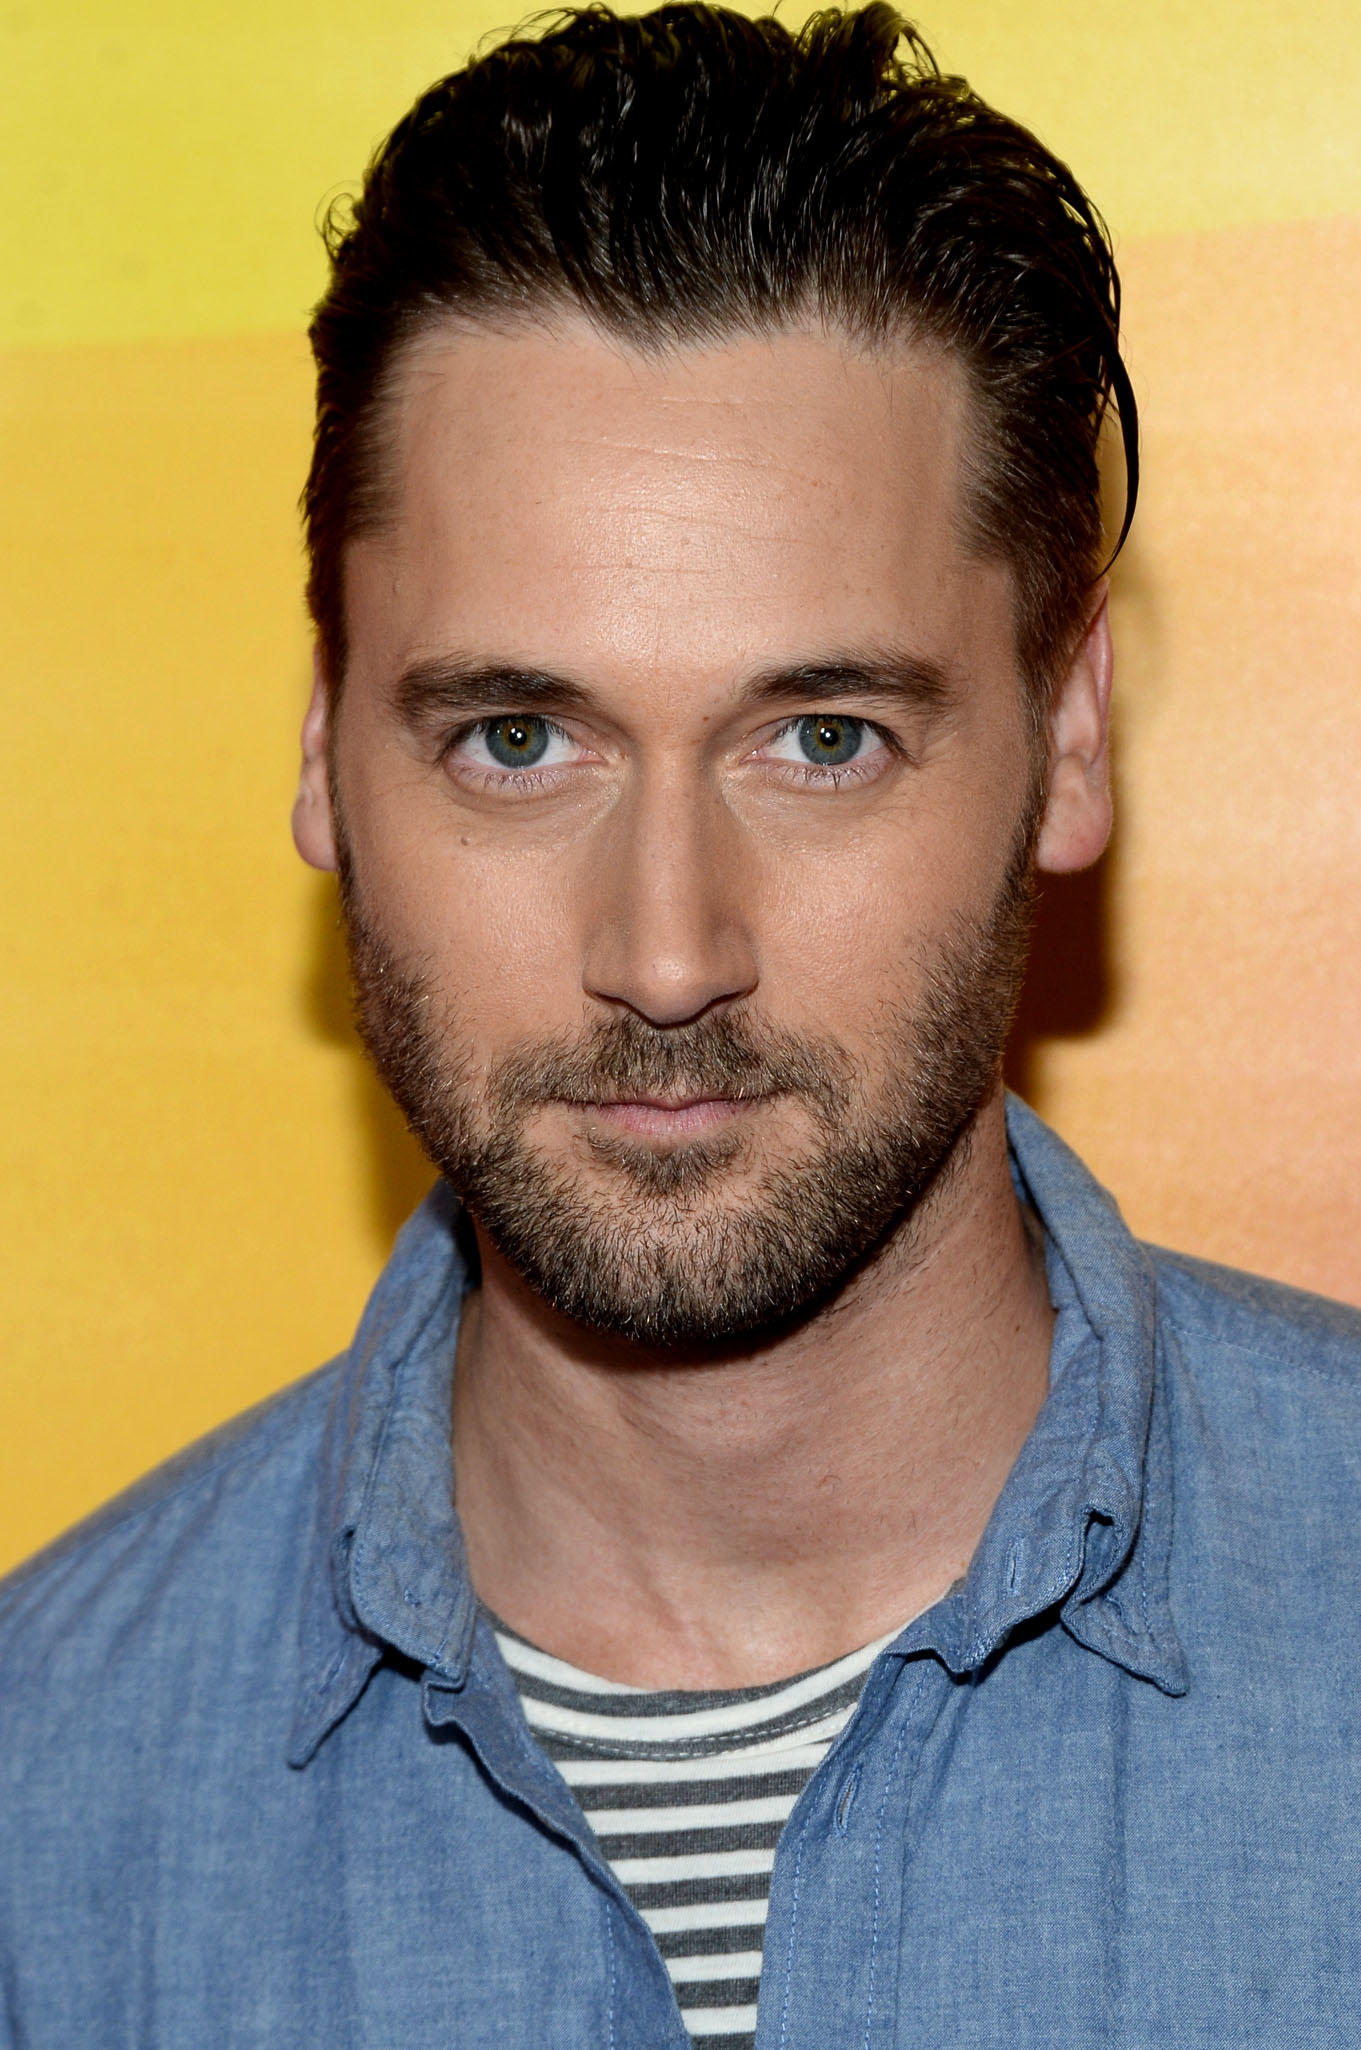 Ryan Eggold at the NBCUniversal Press day during the 2016 Summer TCA Tour in Beverly Hills, CA.